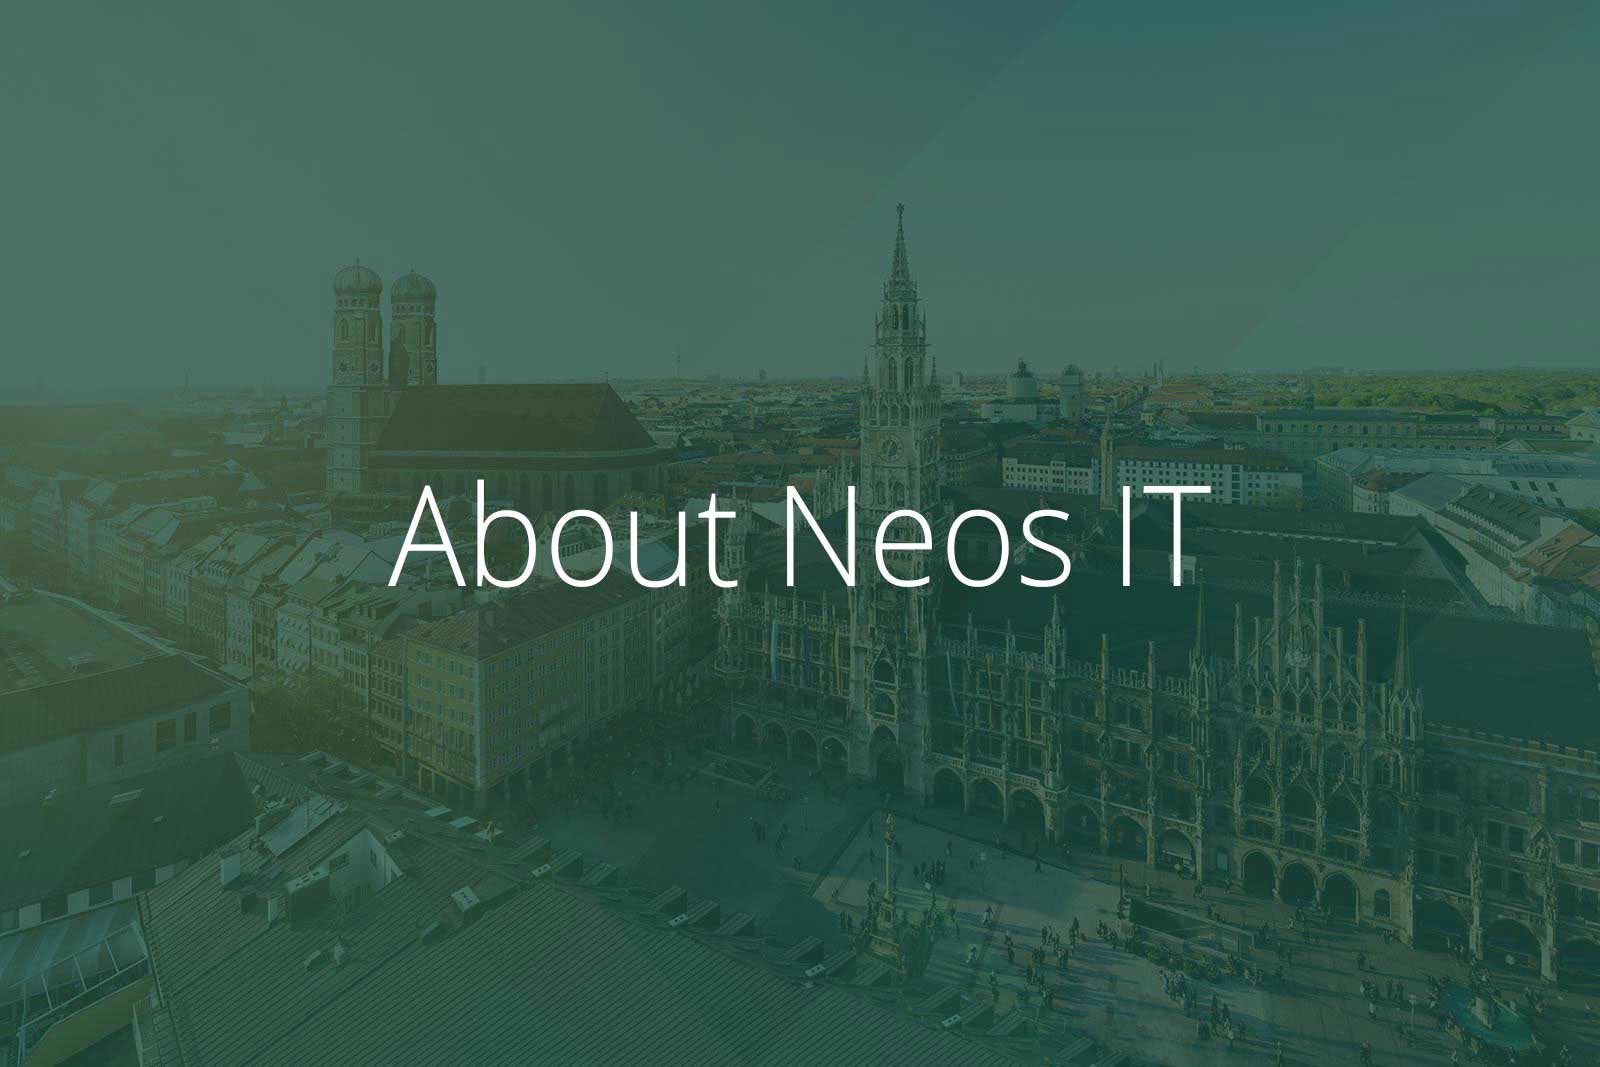 About Neos IT Services, Image Munich